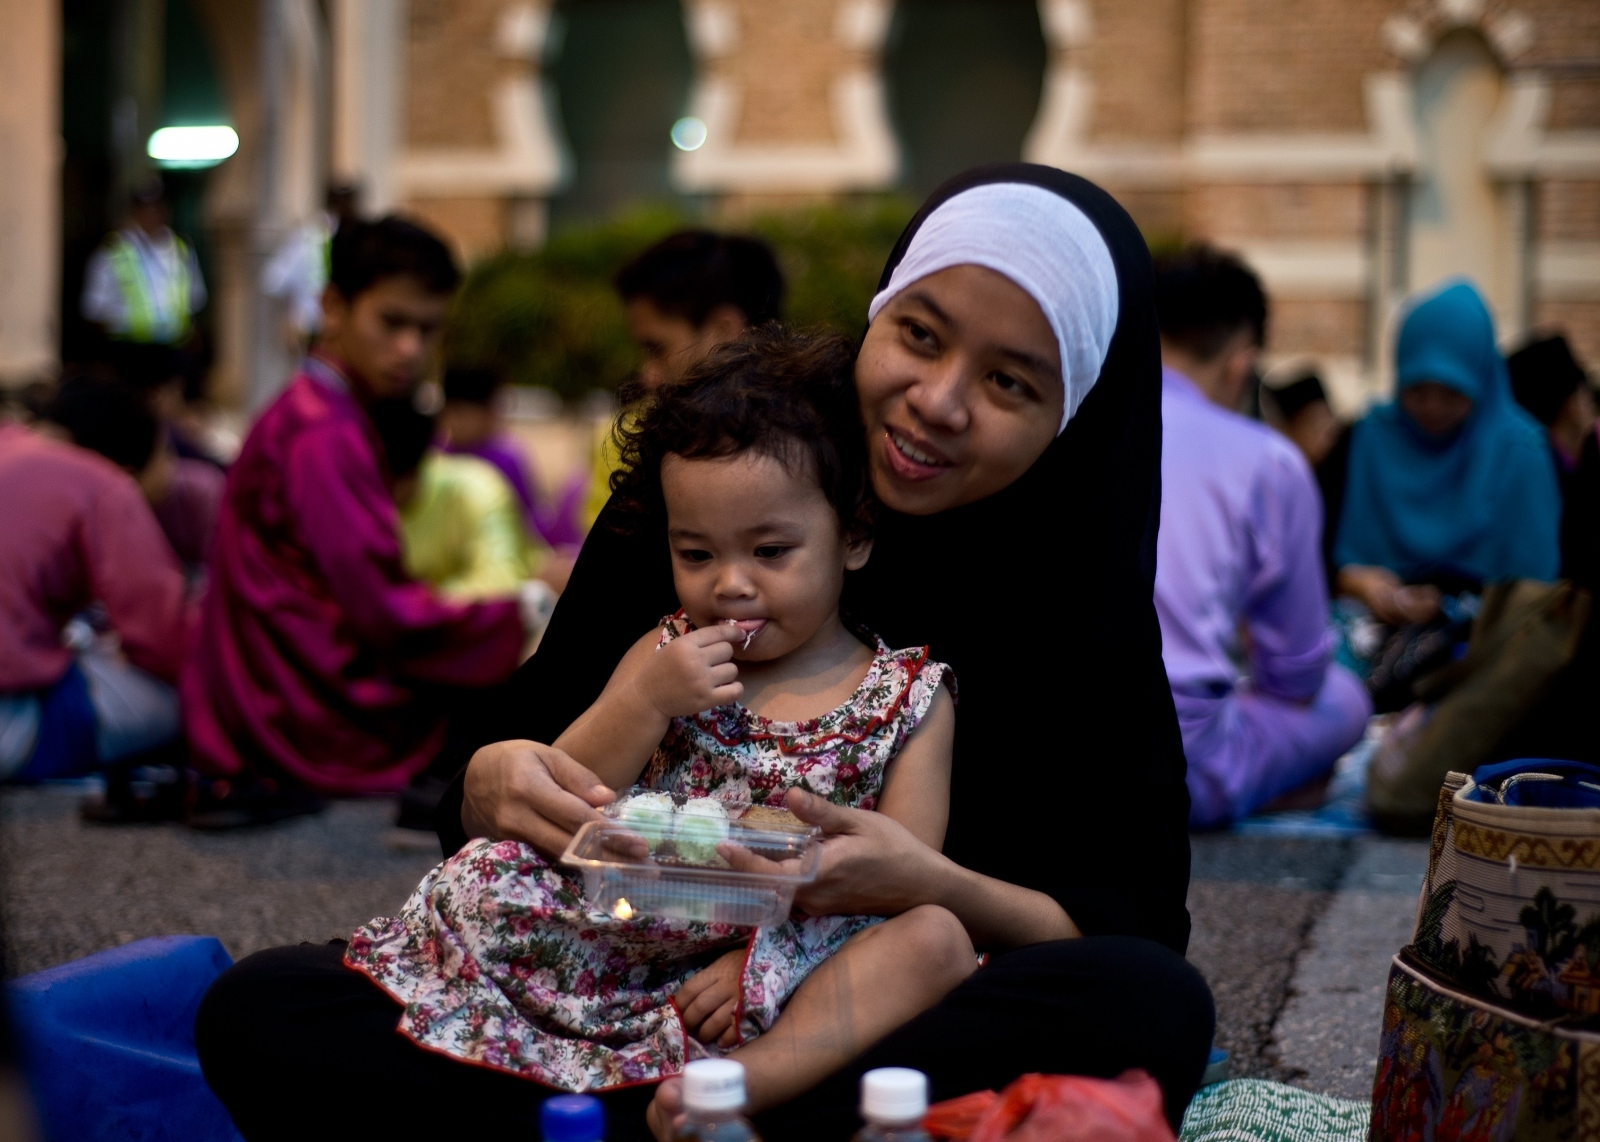 Muslims Prepare to Observe Holy Month of Ramadan